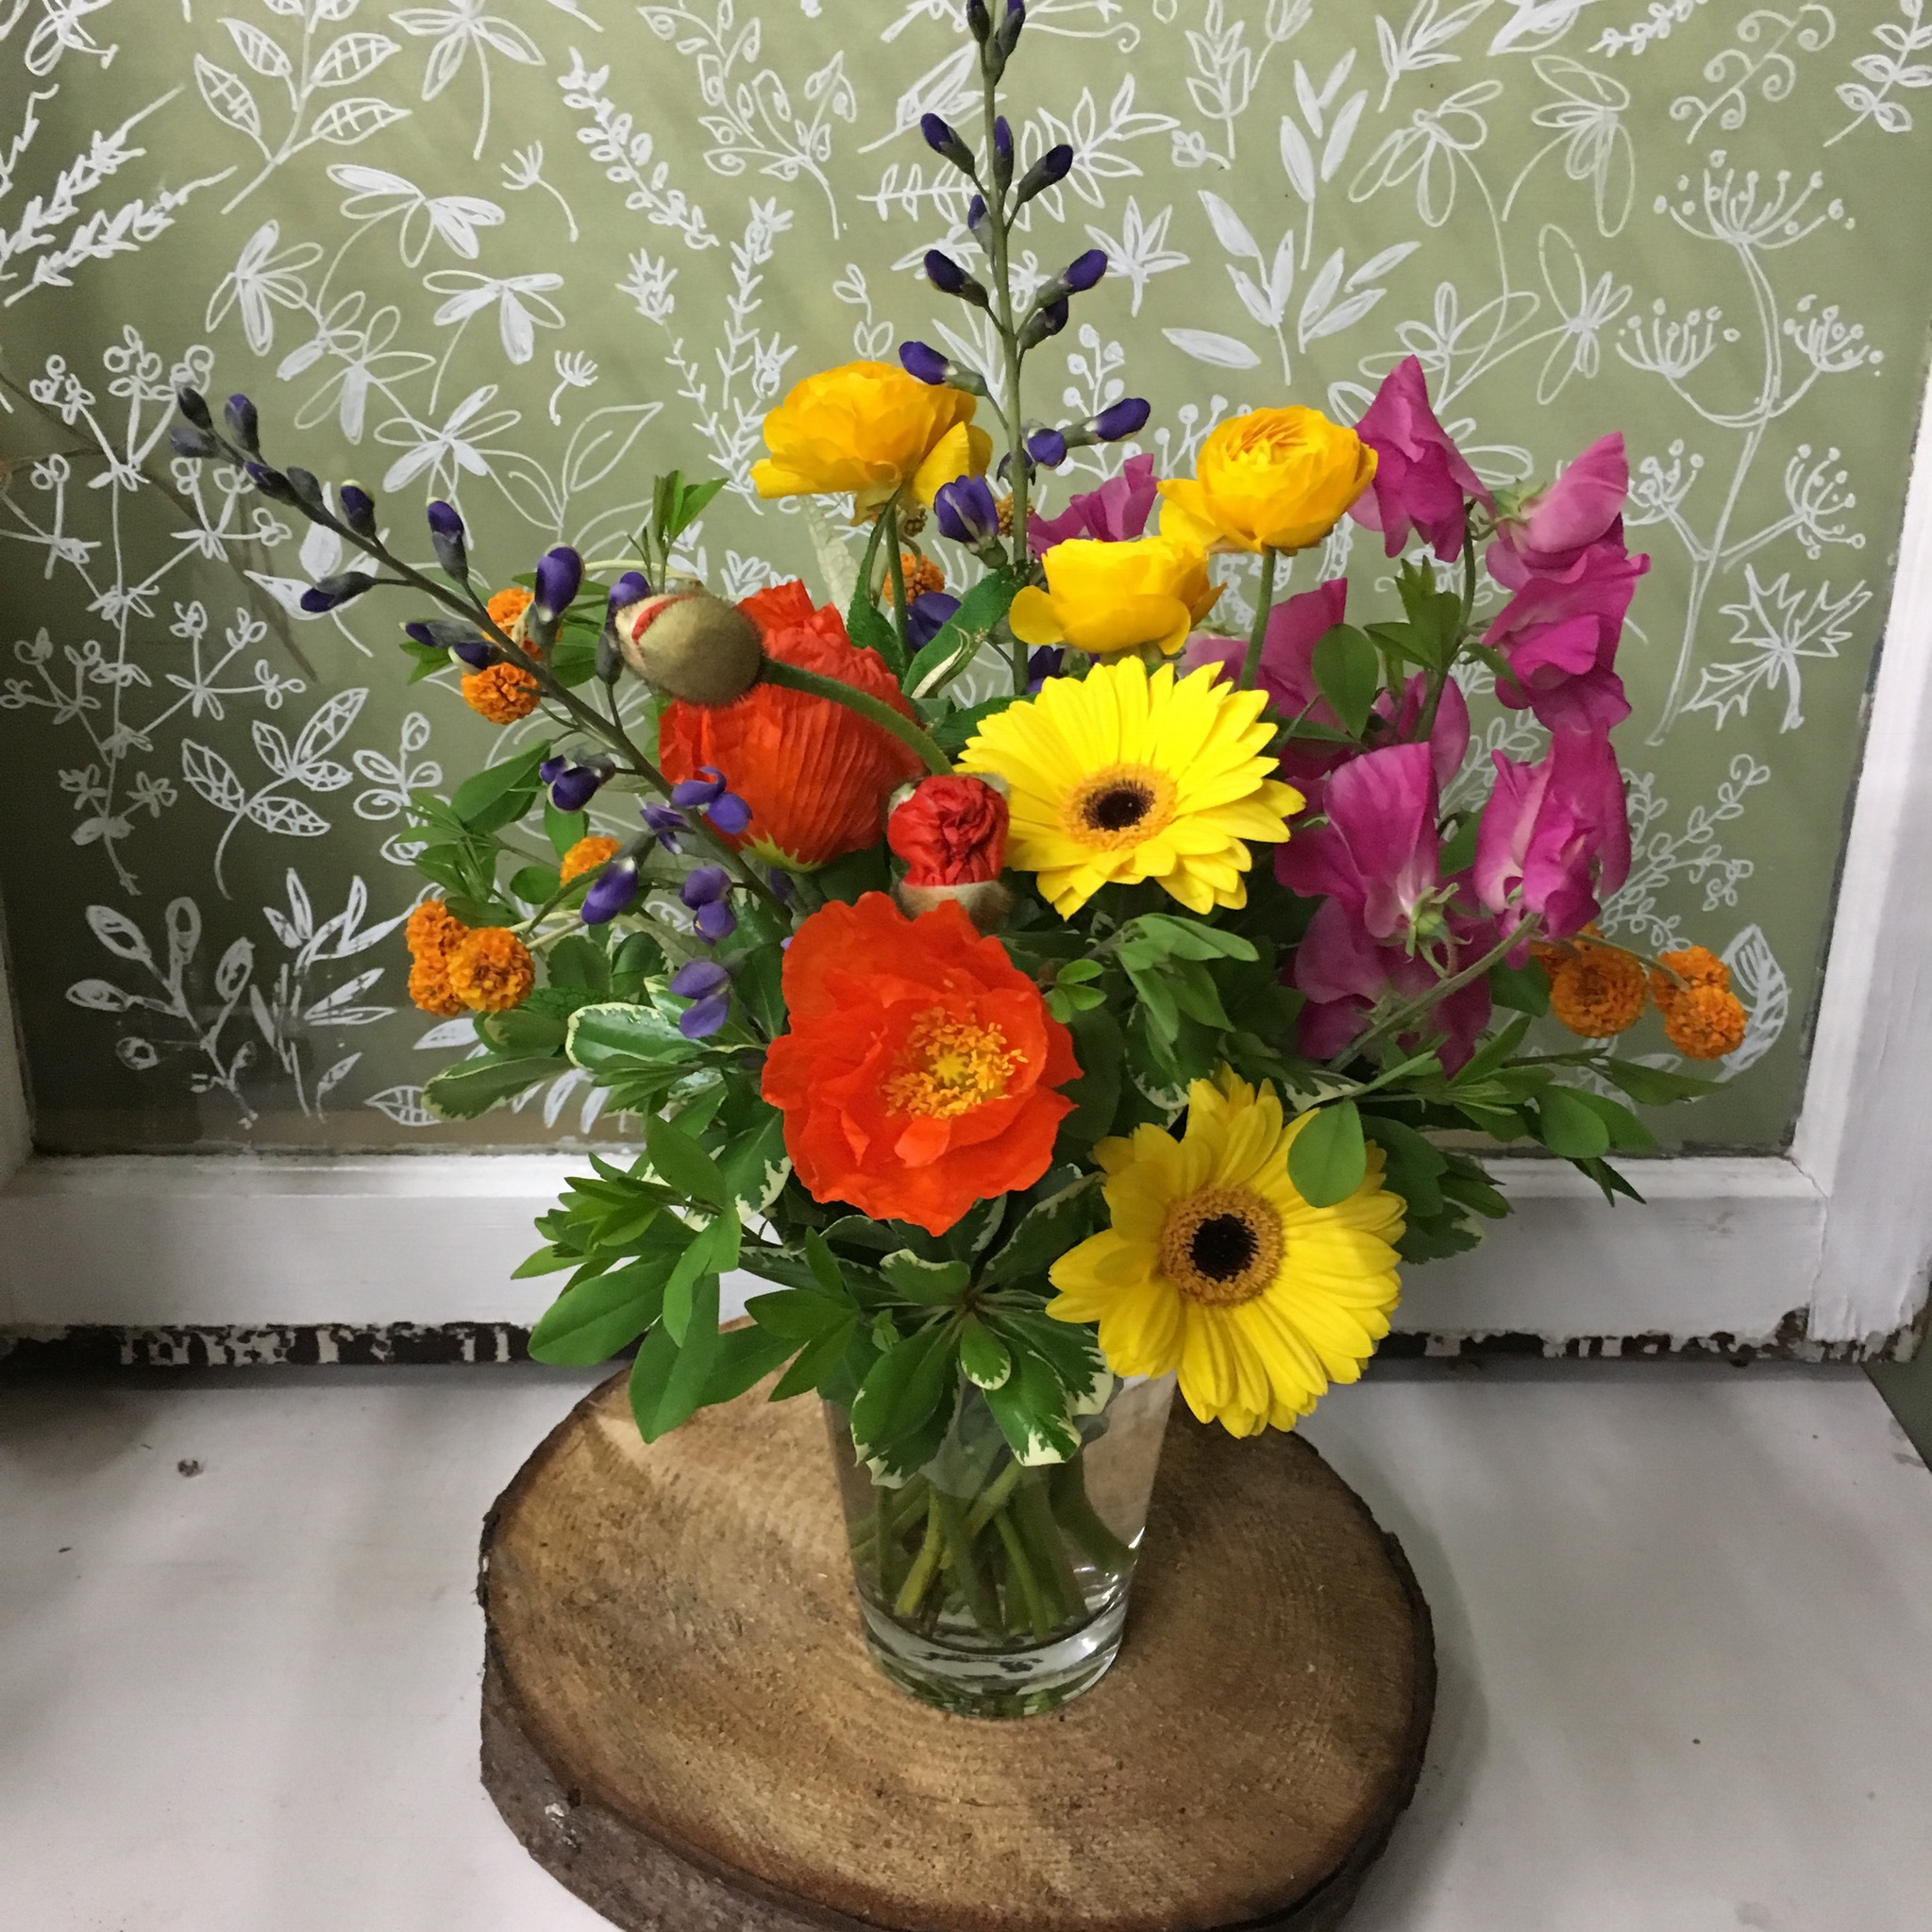 7. Bright bouquet with gerbera and sweet pea